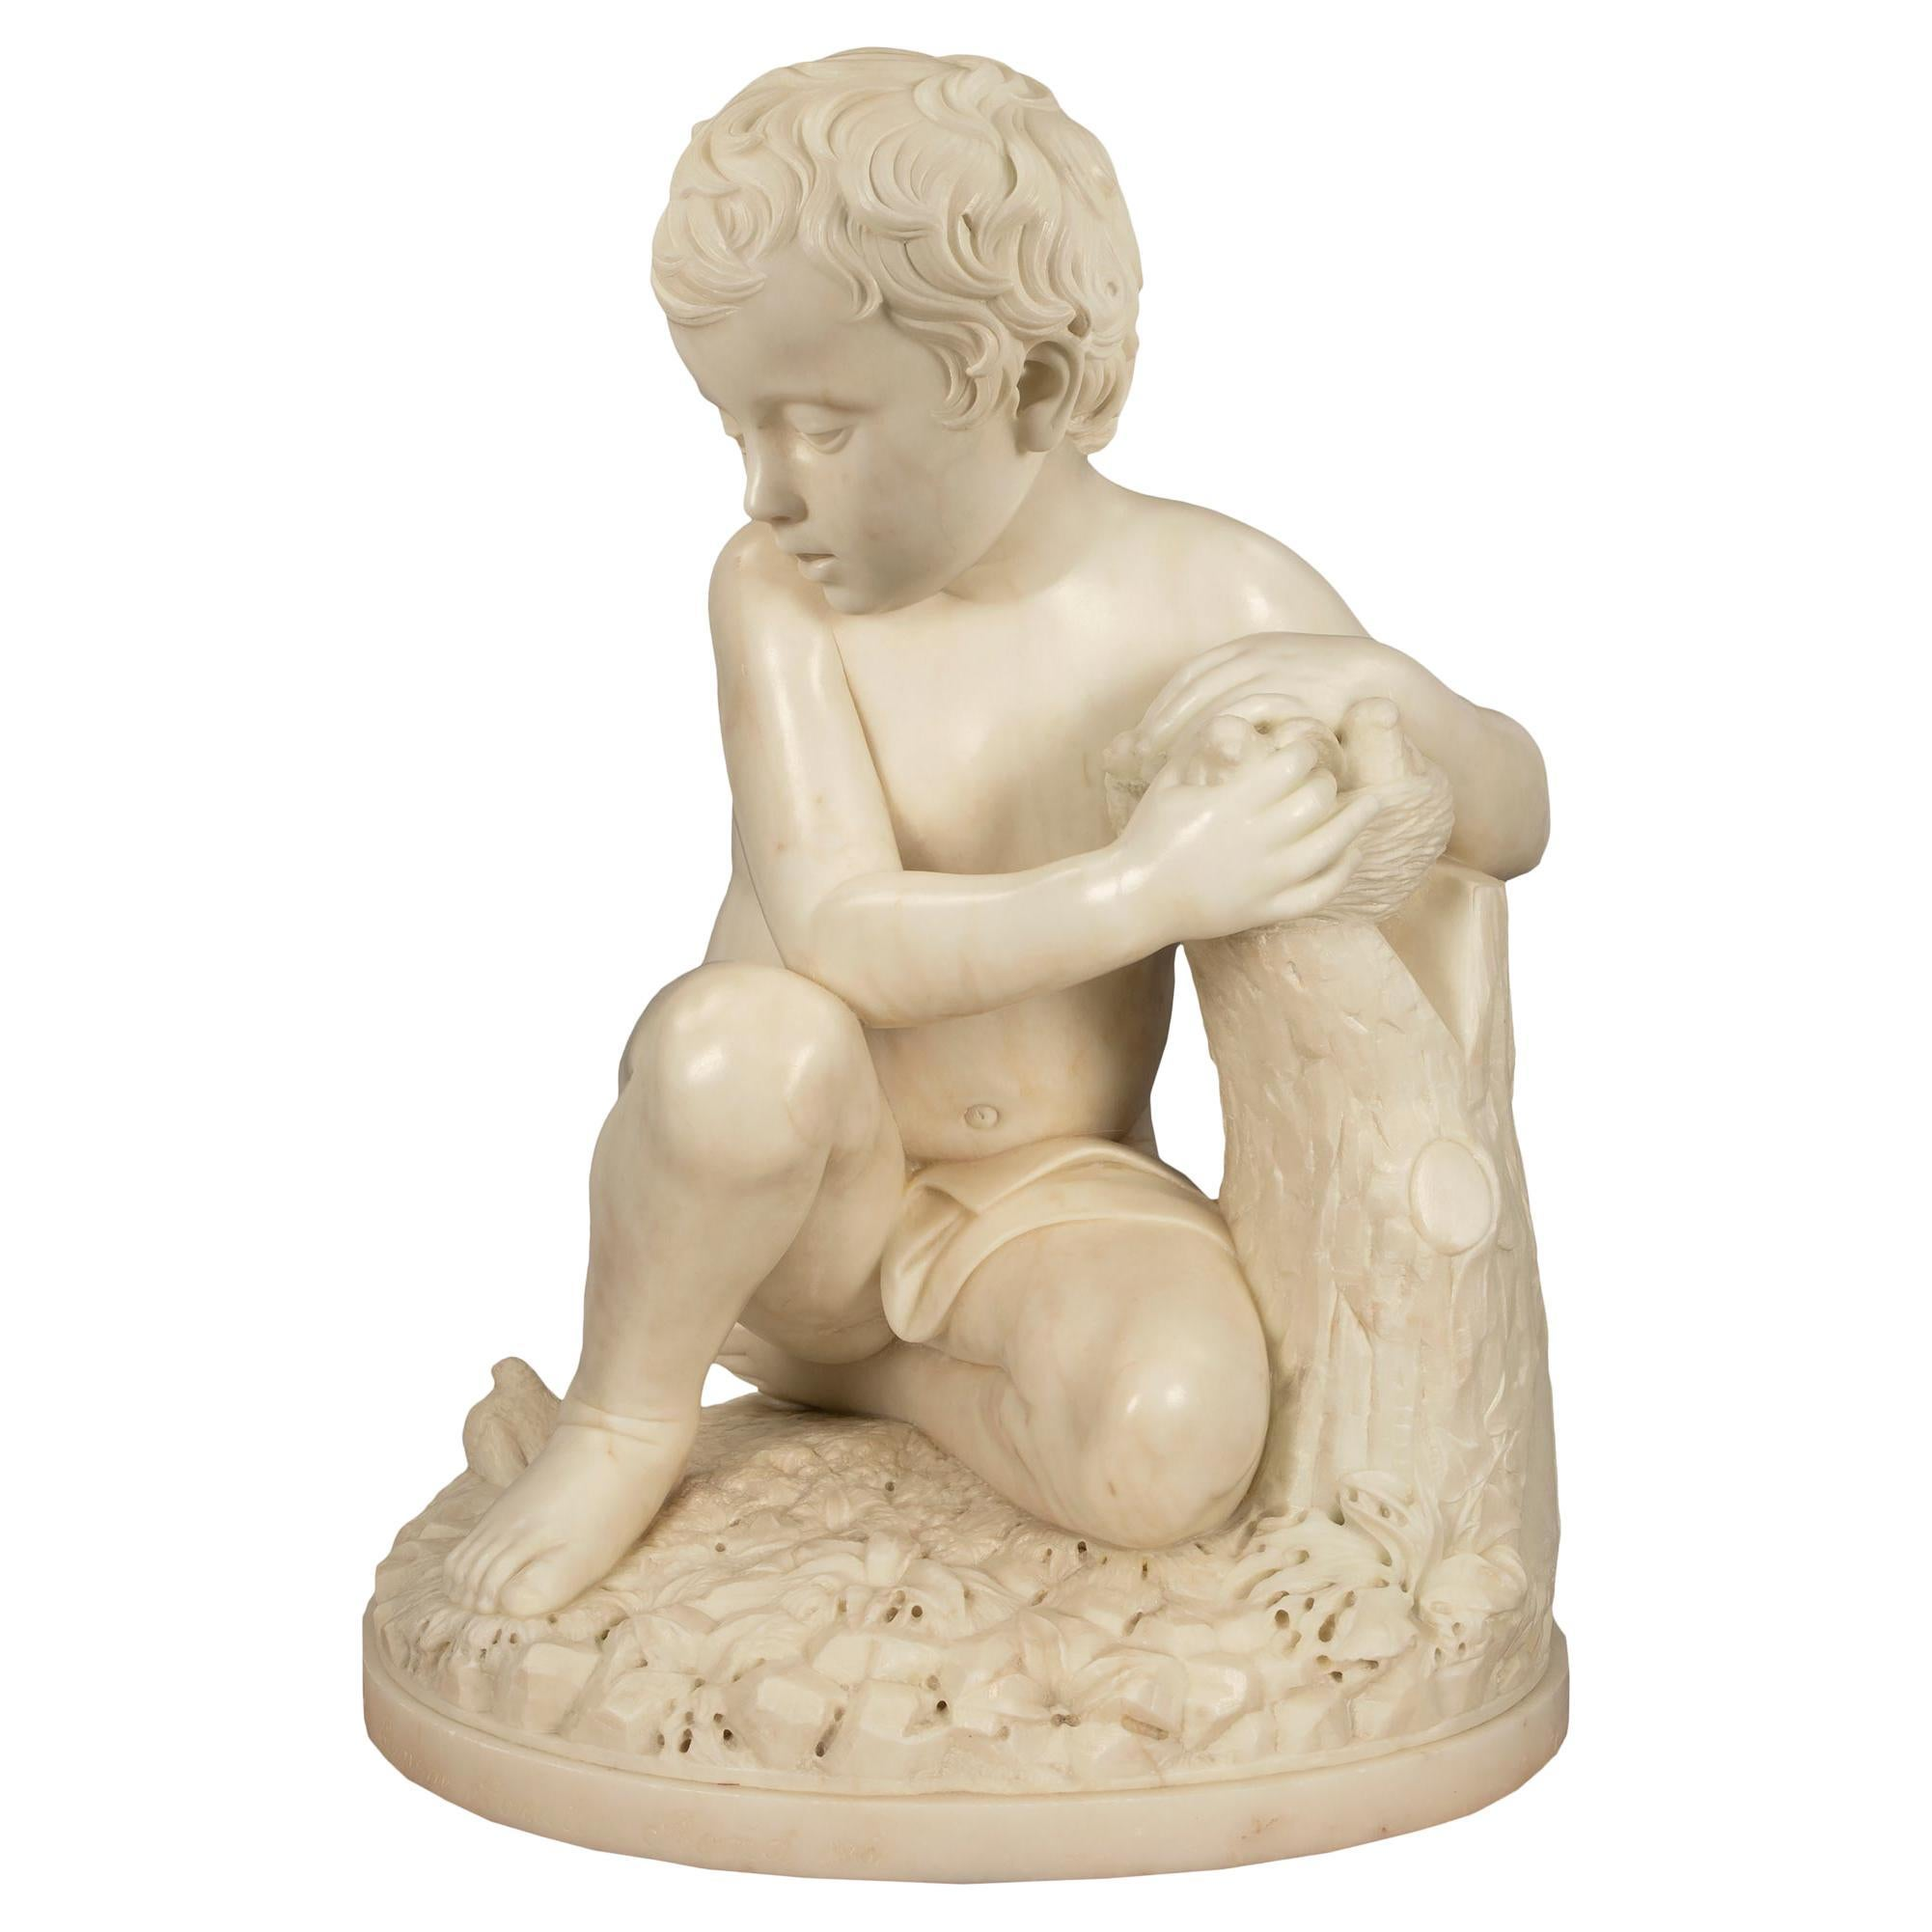 Italian 19th Century White Carrara Marble Signed Statue of a Young Boy